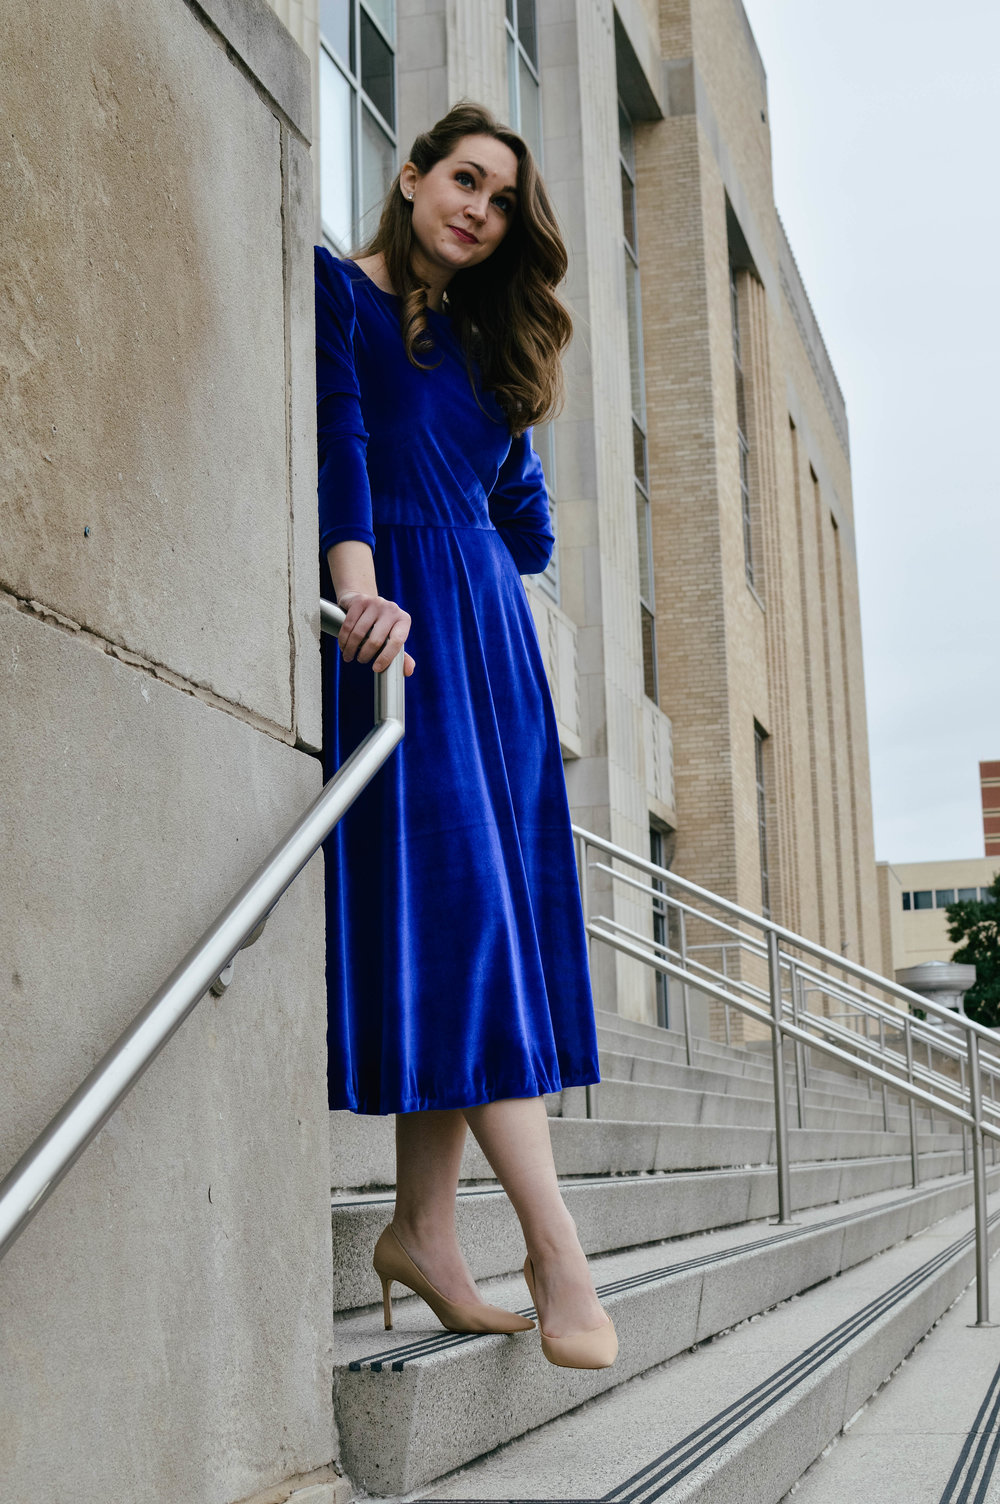 Blue Velvet Dress (38 of 47).jpg